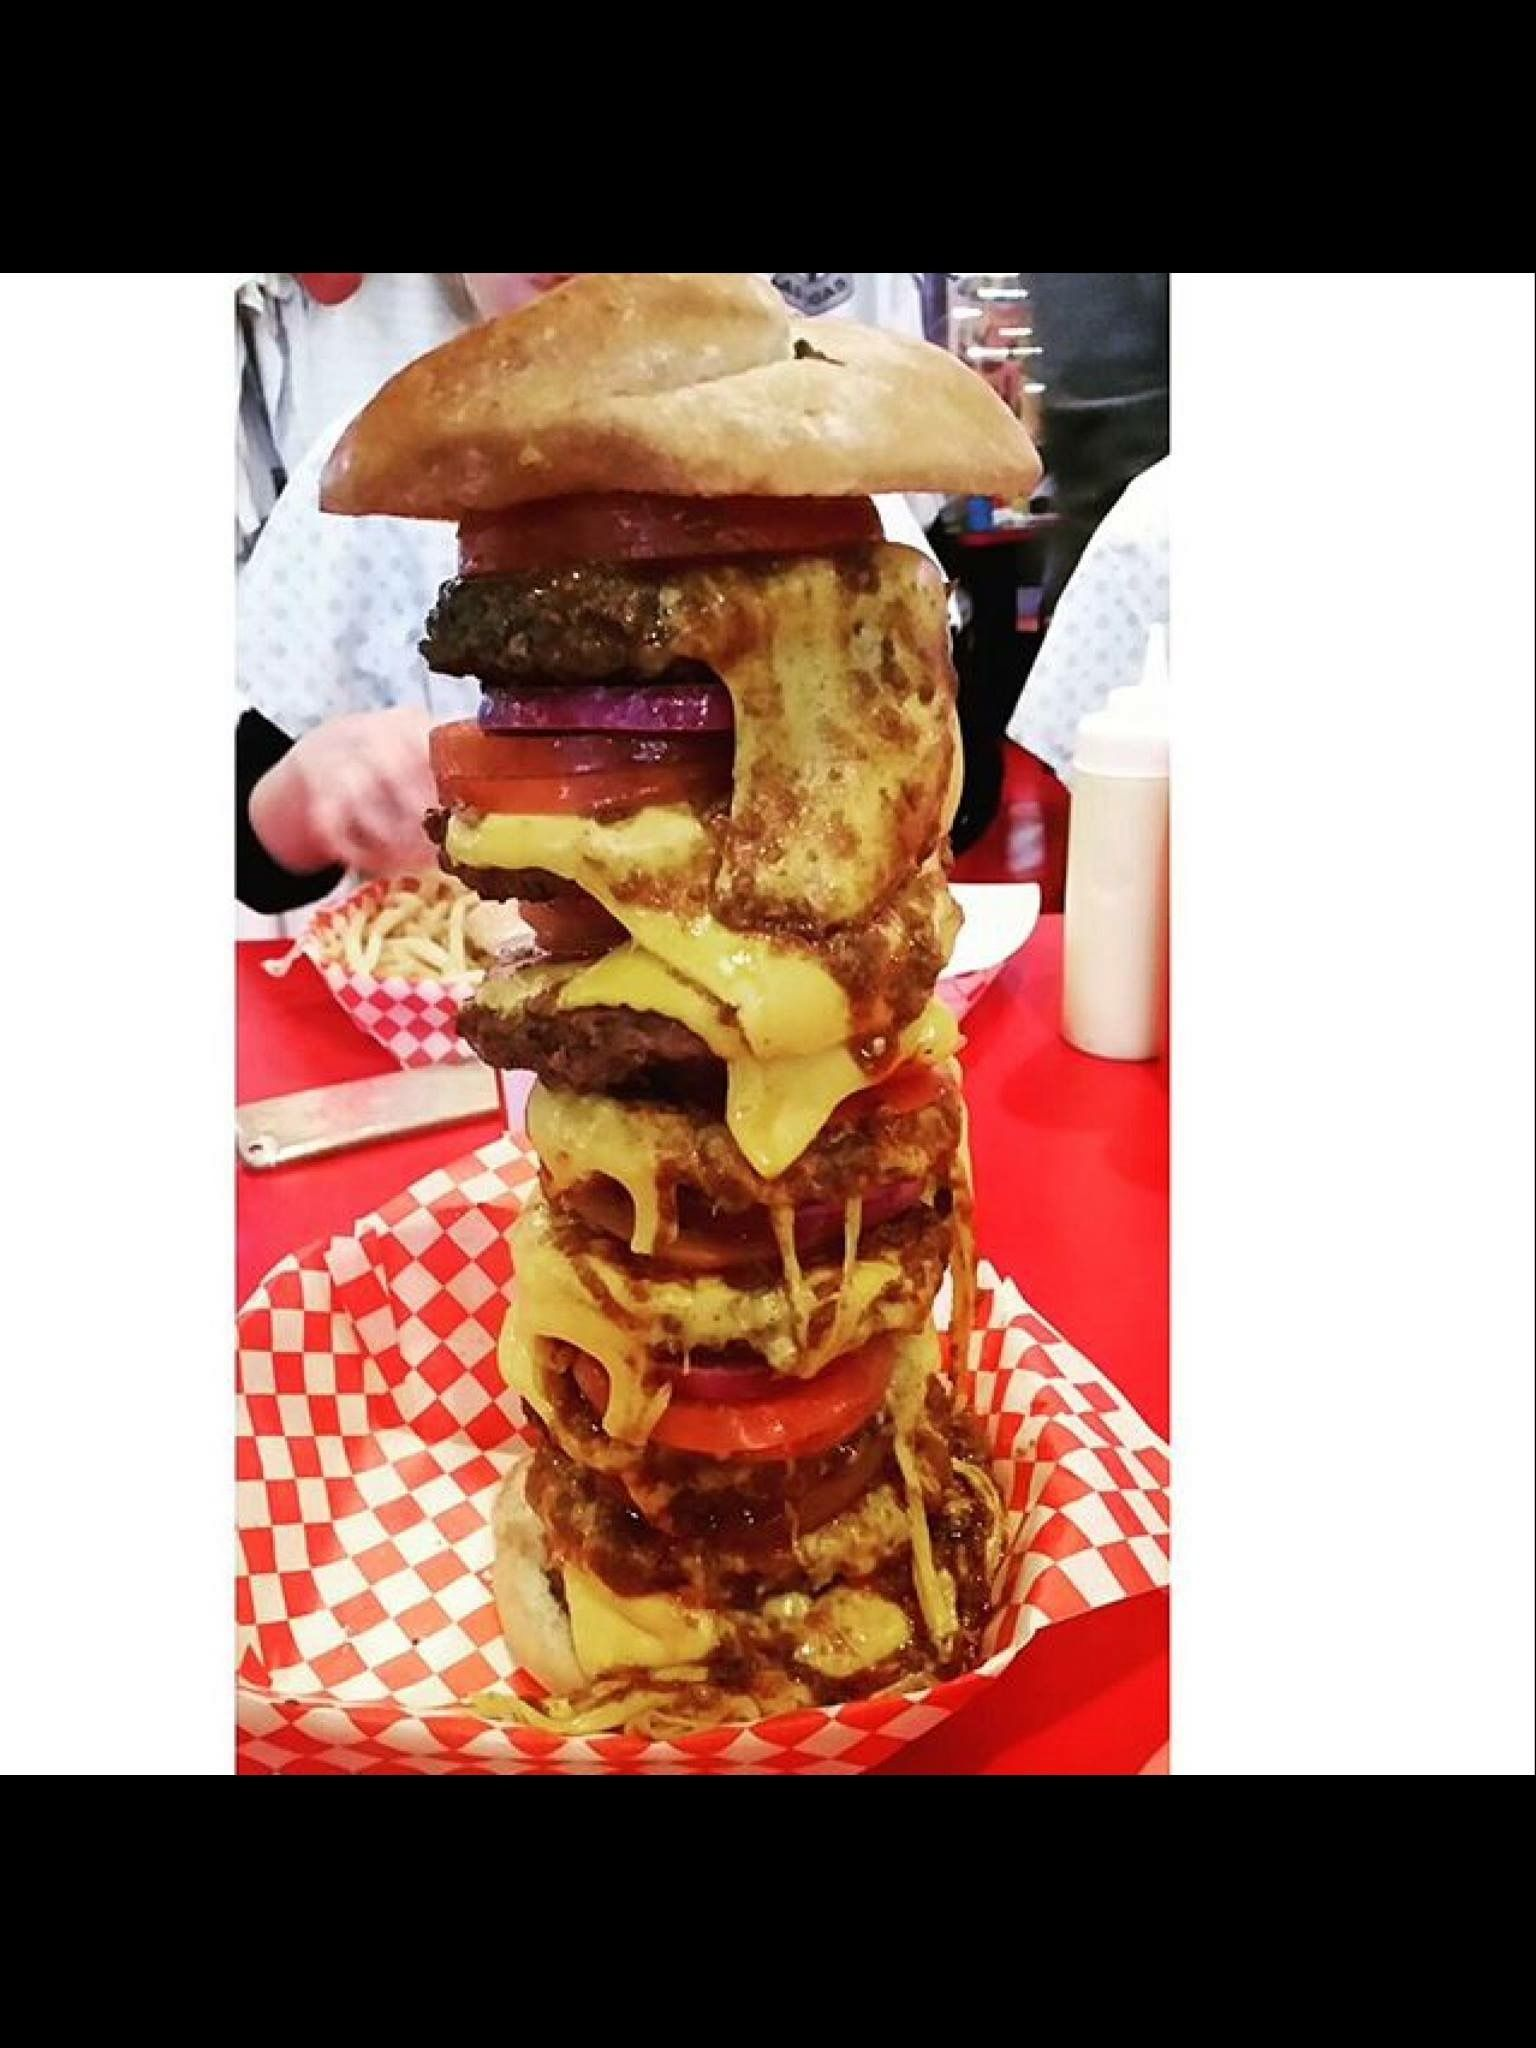 Double Quadruple bypass burger in downtown Las Vegas, Nevada at The Heart Attack Grill!